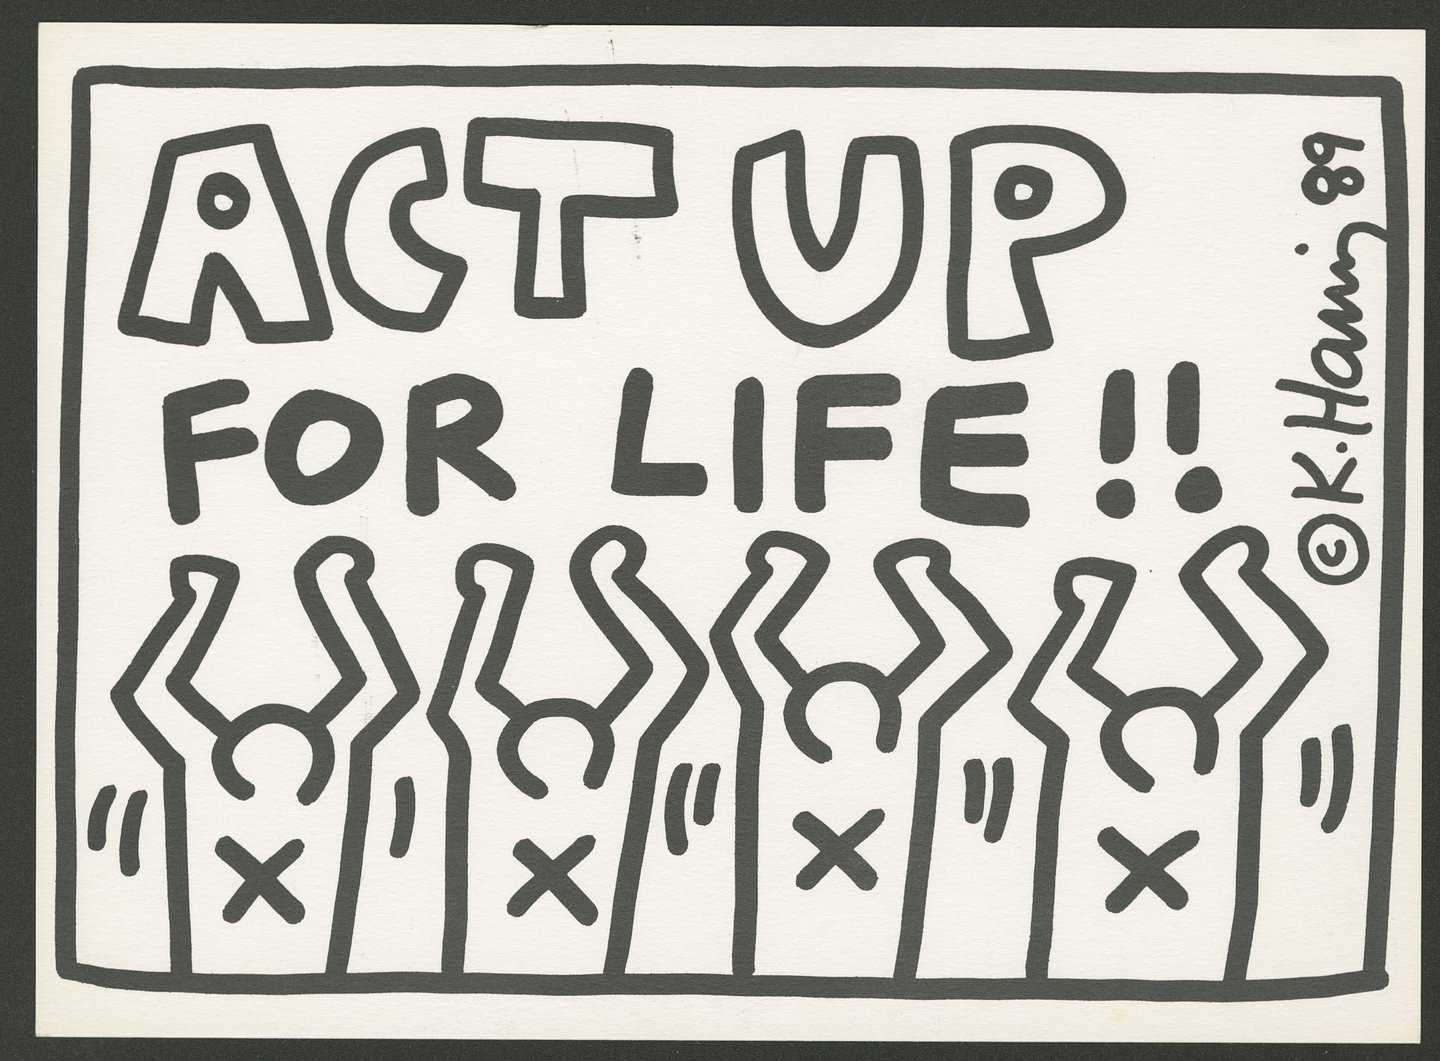 Built from his own words and past interviews, a new Keith Haring film comes to the BBC